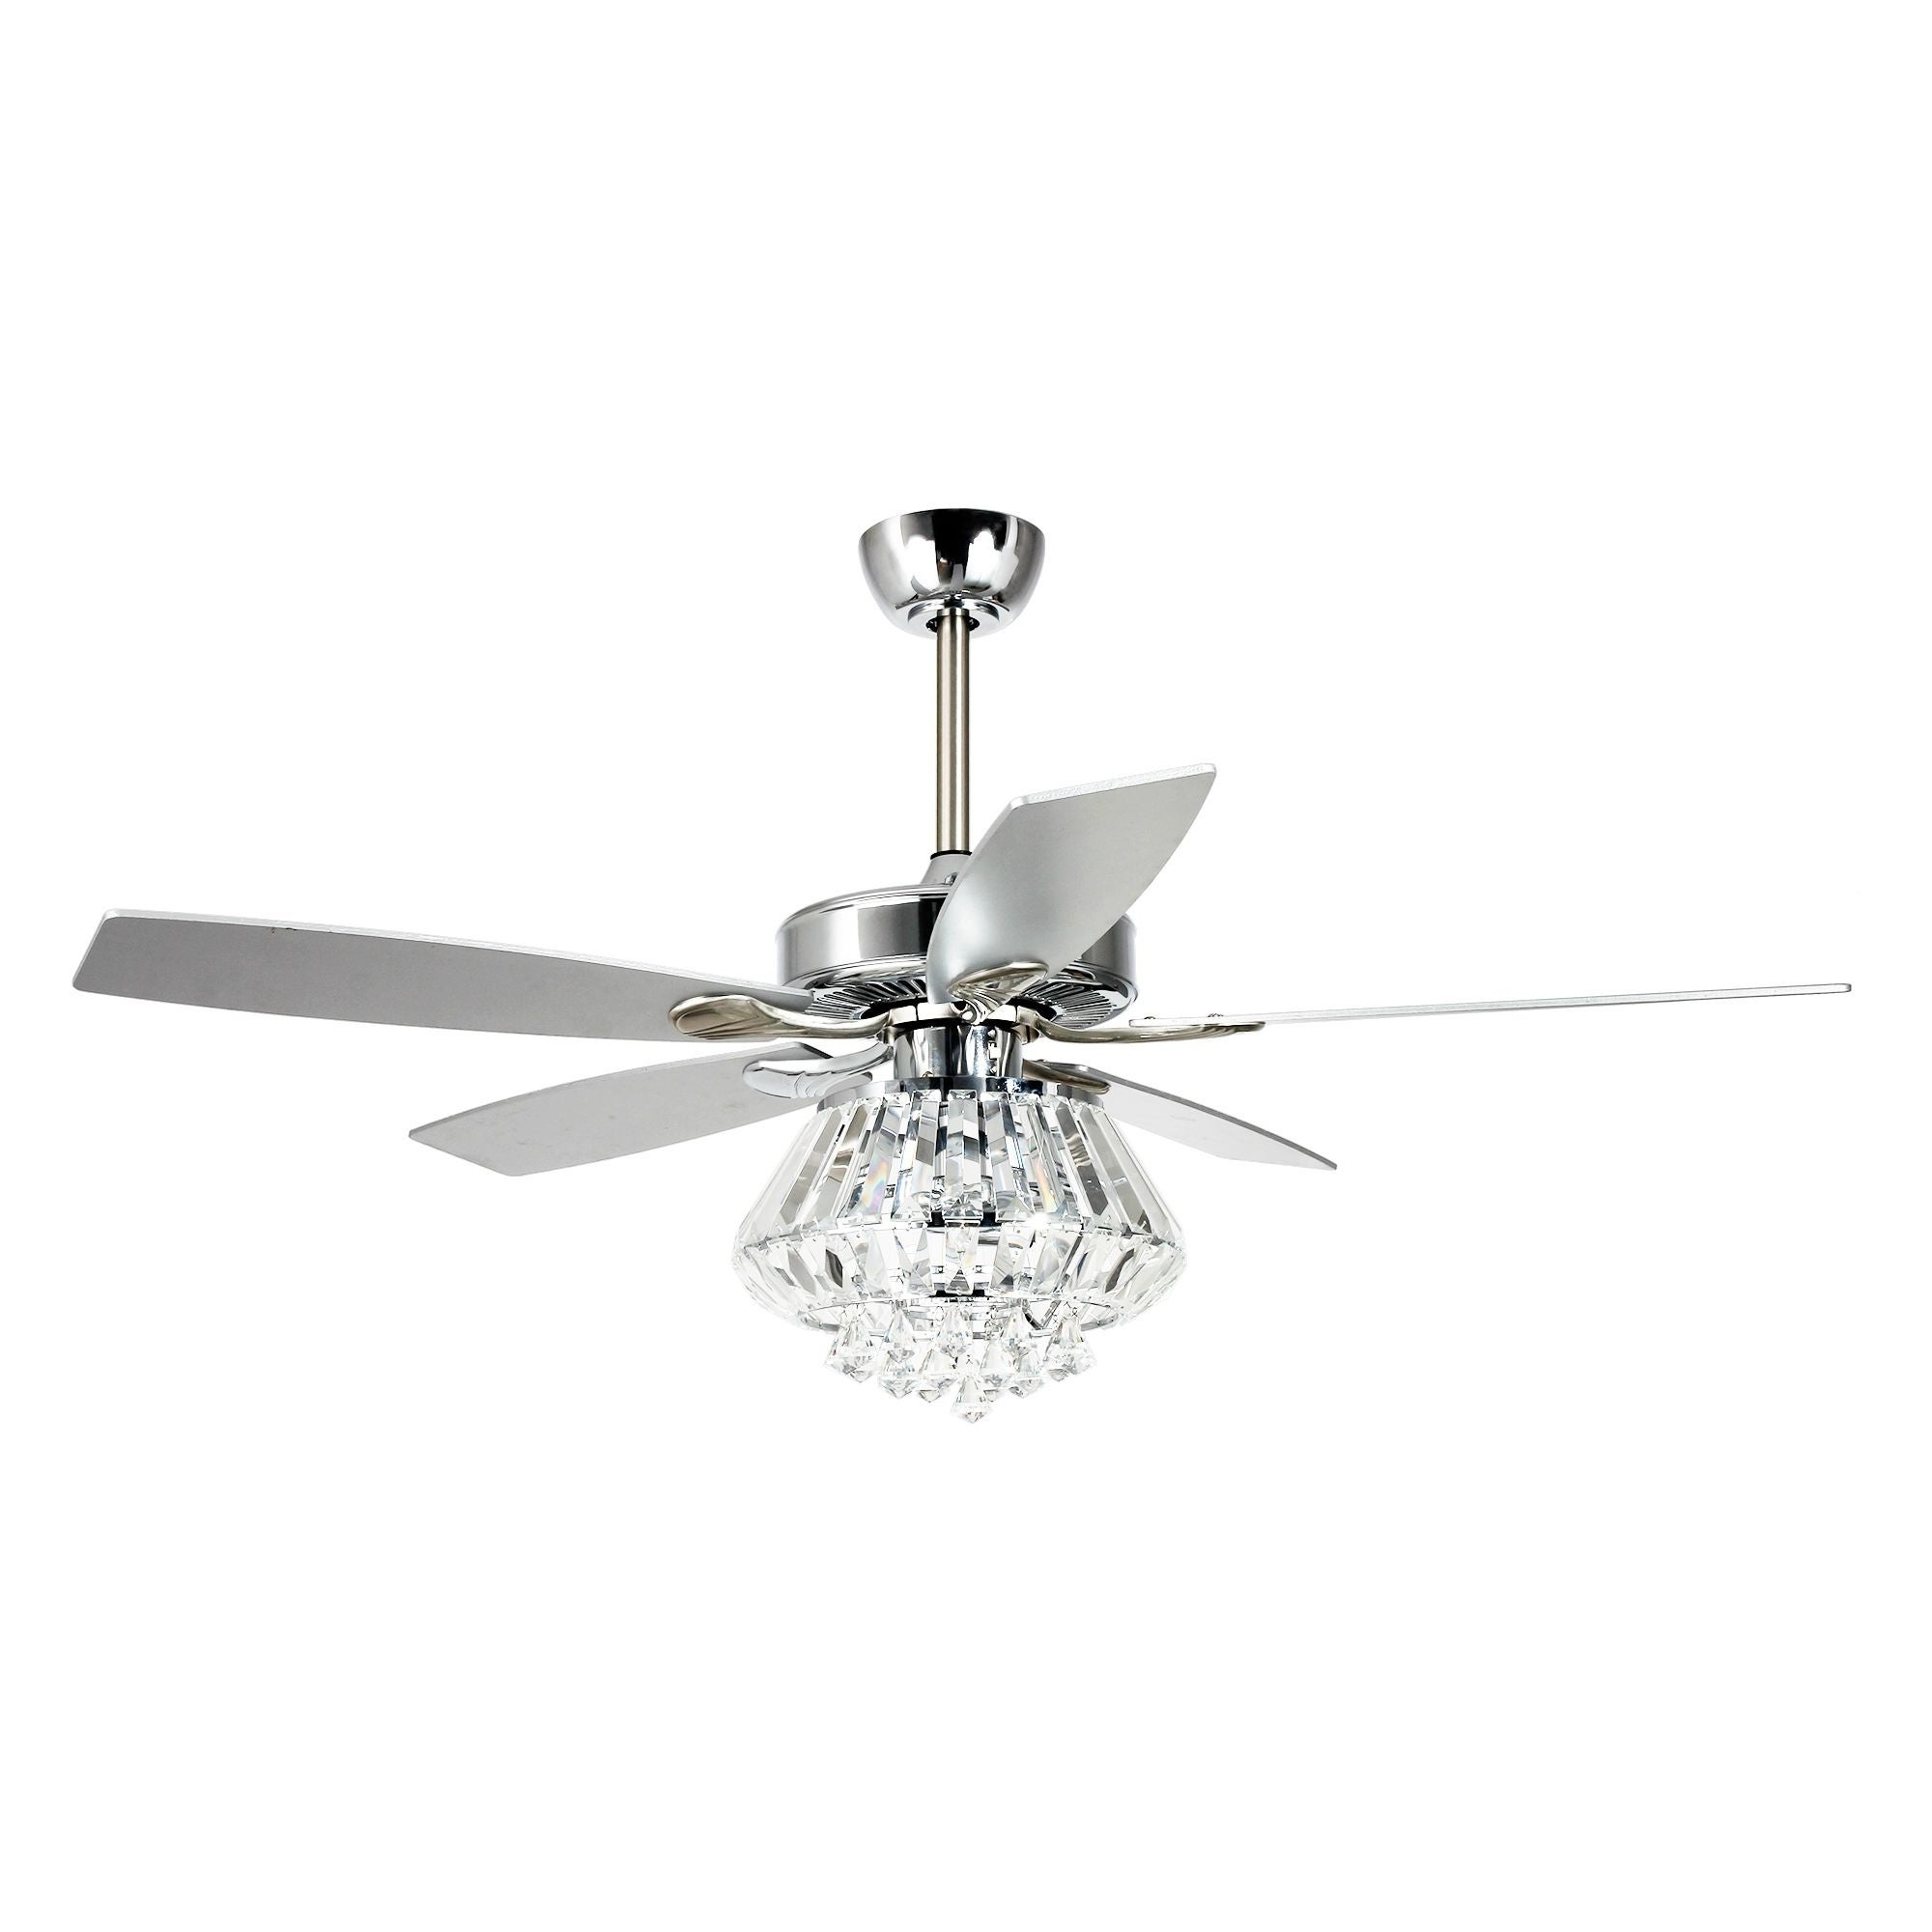 Modern 52 Inch Chrome 5 Blade Crystal Ceiling Fan With Remote For Well Liked 5 Blade Ceiling Fans With Remote (View 12 of 20)